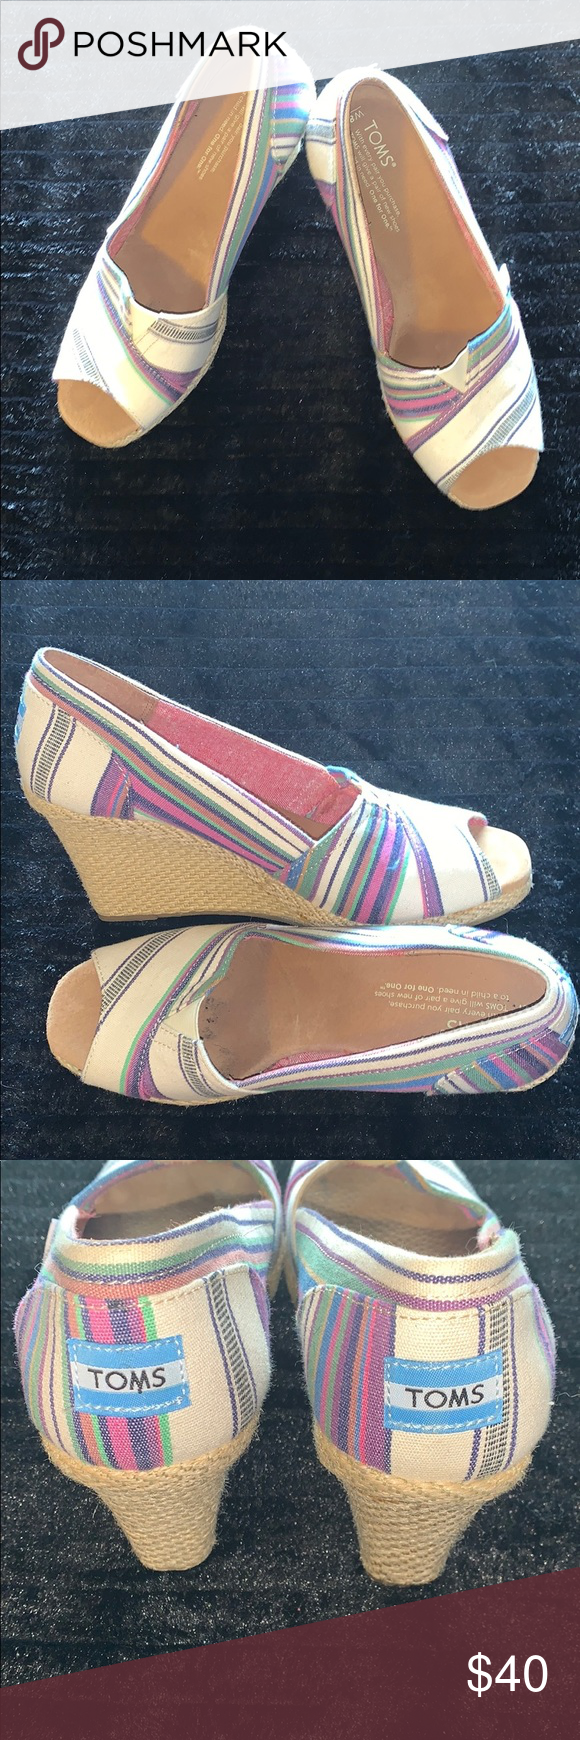 TOMS Wedges Multi color stripe design open toe wedges. EUC very cute can be casual or dressed up Toms Shoes Wedges #tomwedges